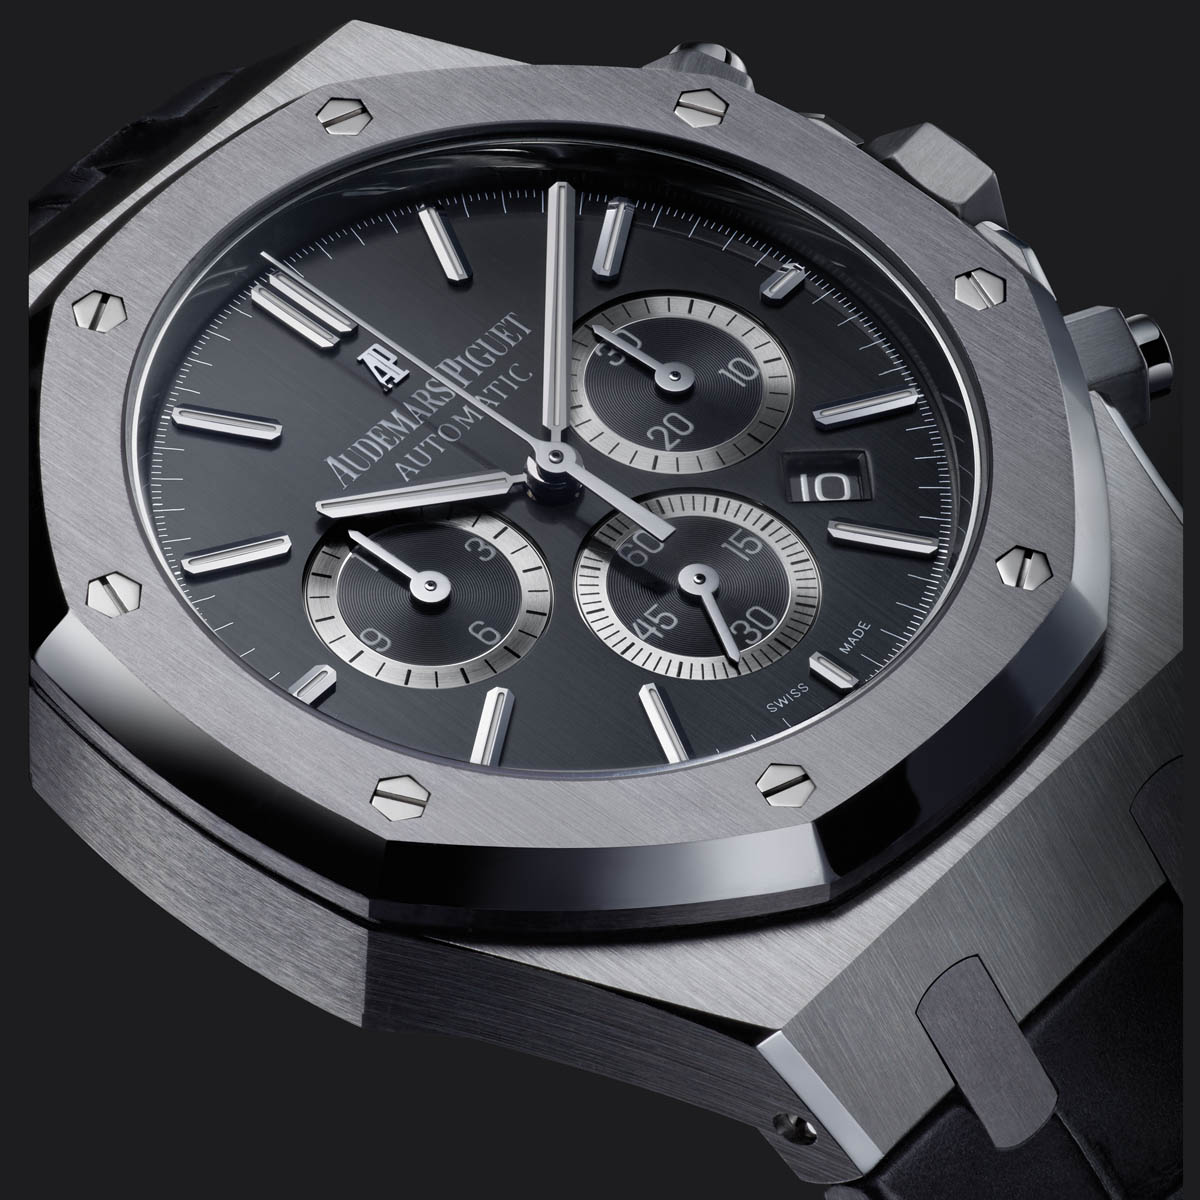 The Watch Quote The Audemars Piguet Leo Messi Royal Oak Limited